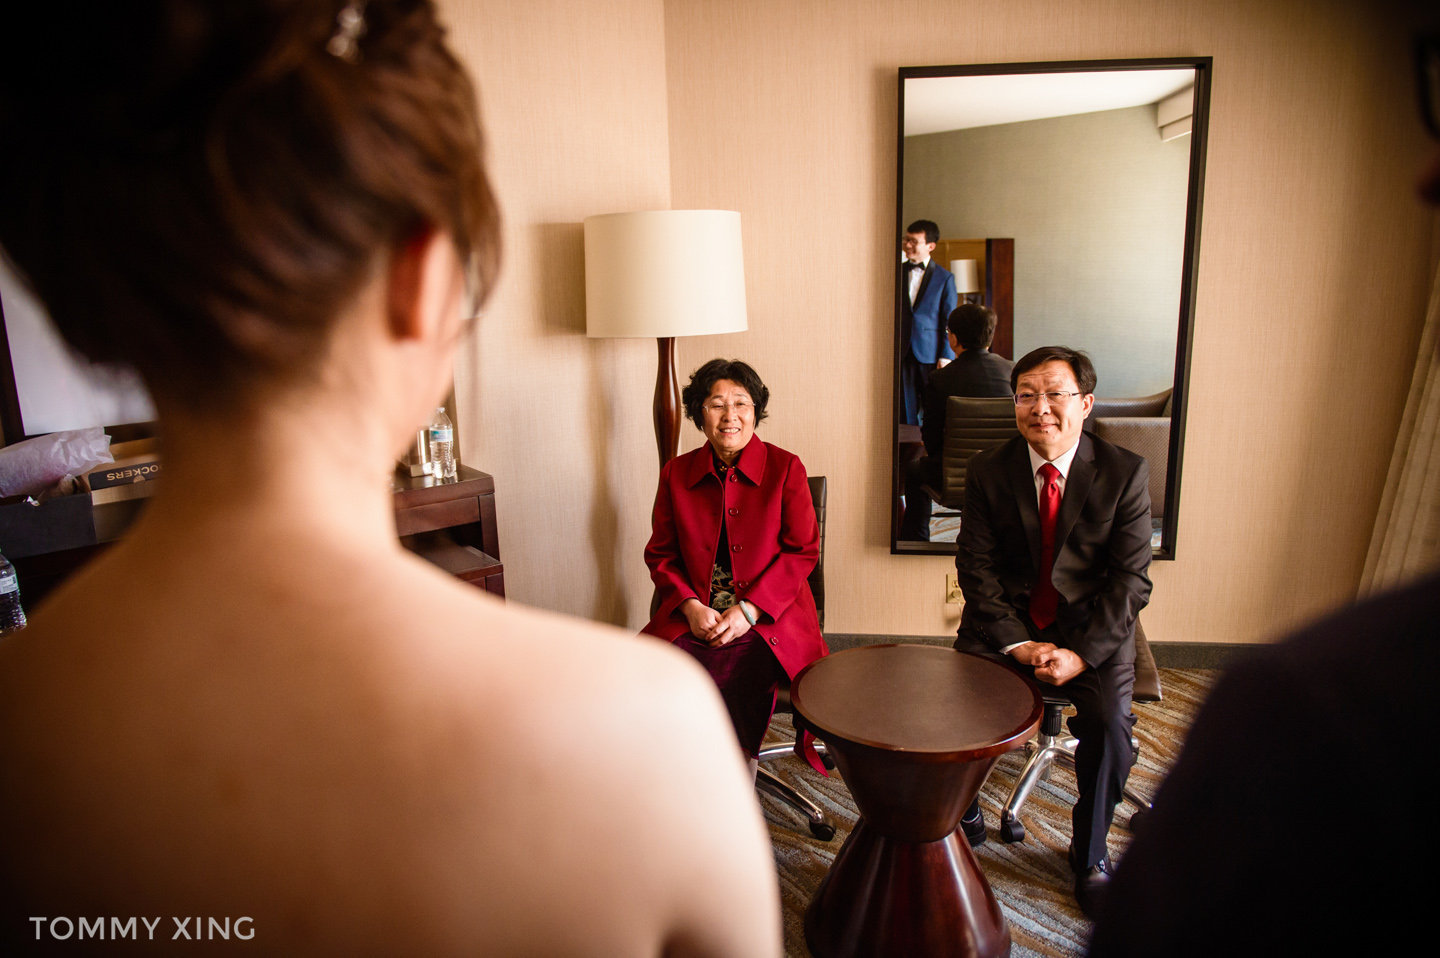 Los Angeles Wedding Photographer 洛杉矶婚礼婚纱摄影师 Tommy Xing-54.JPG